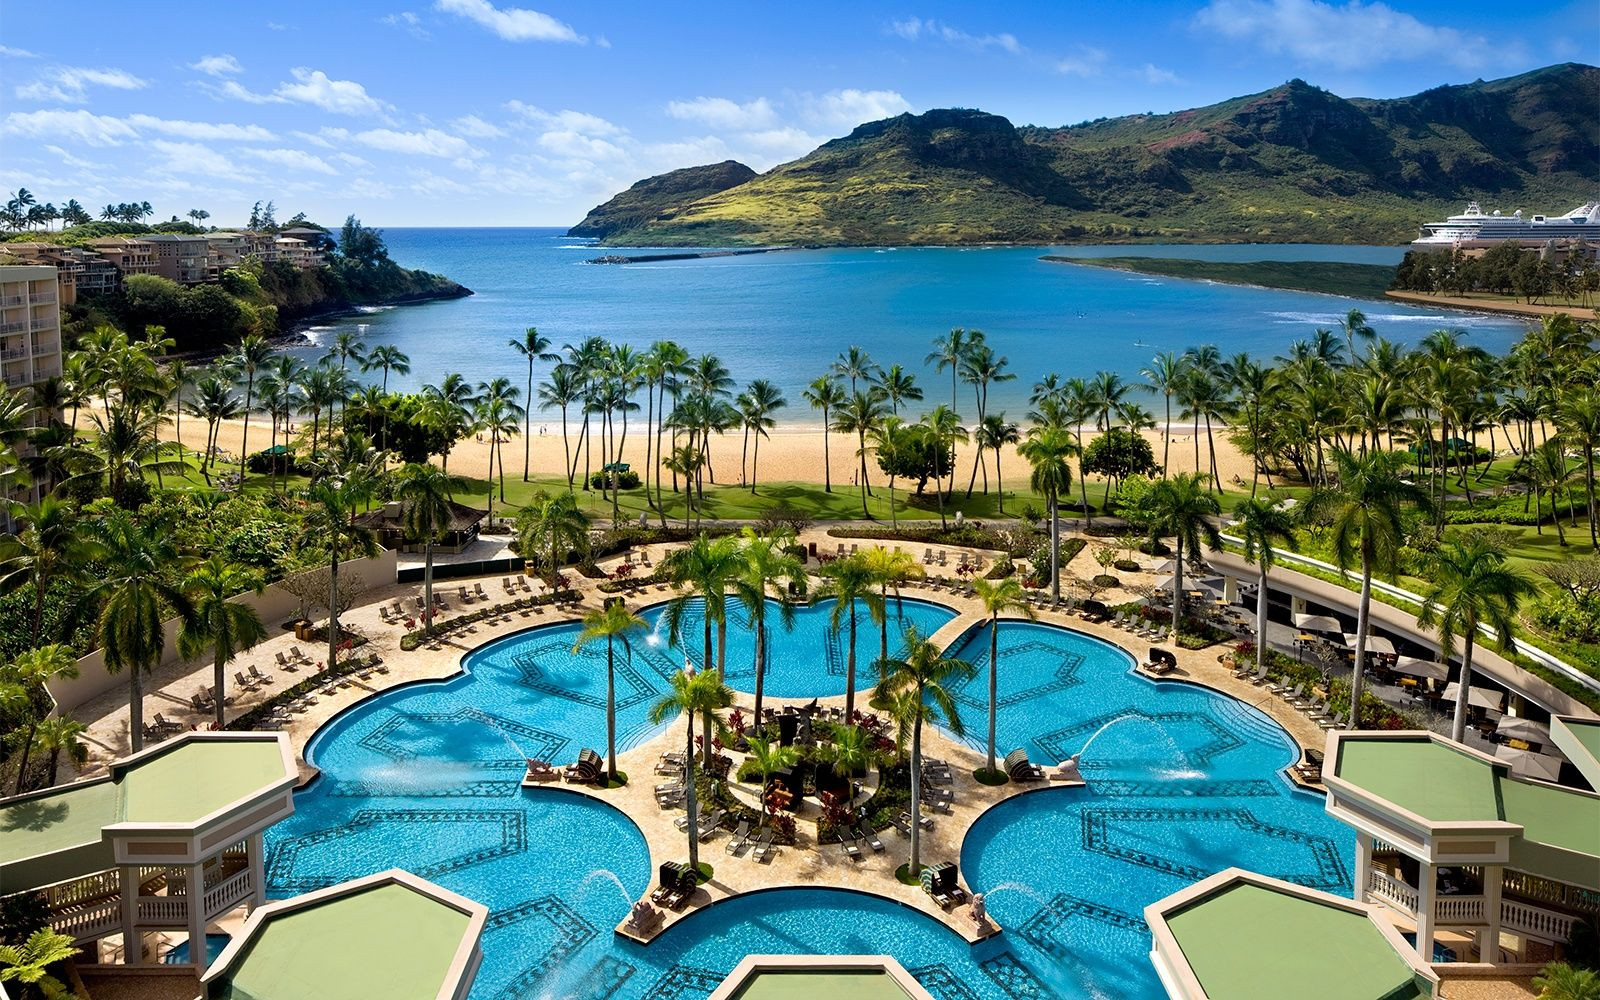 Kauai Marriott Resort On Kalapaki Beach Hawaii Hawaii